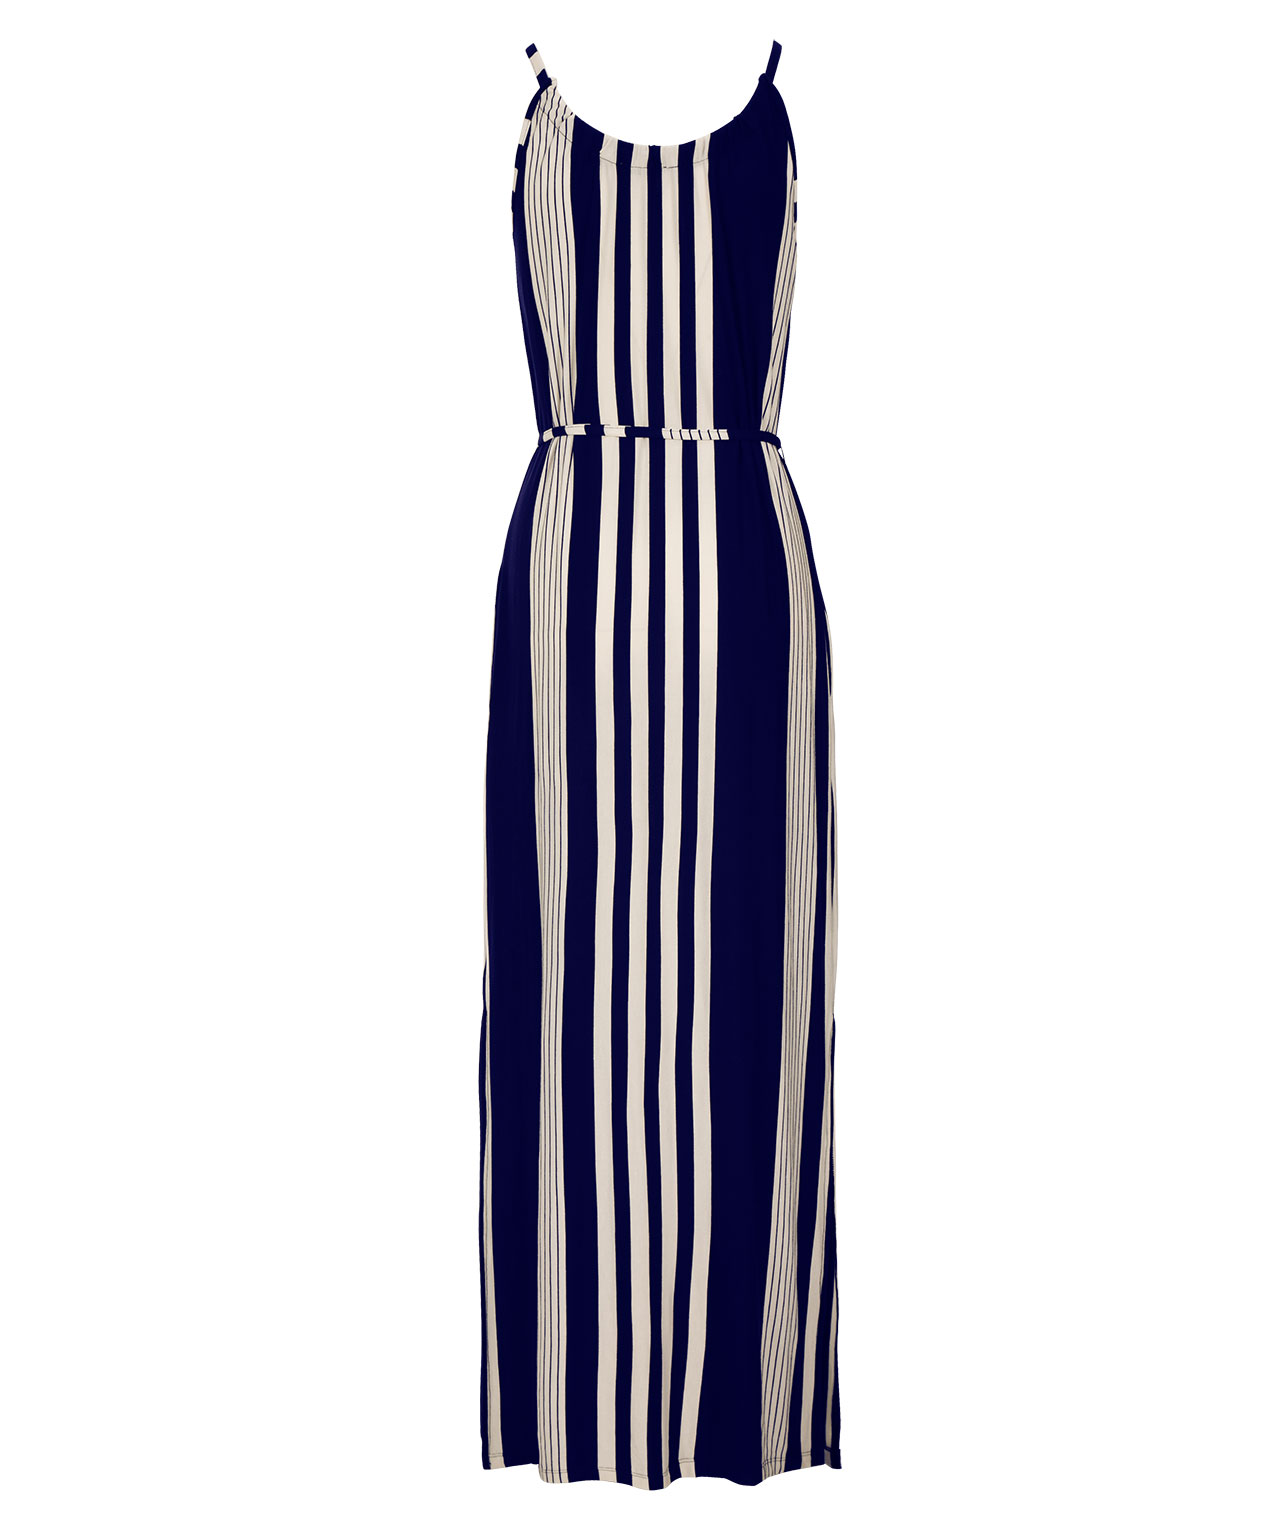 black and white vertical striped maxi dress wwwpixshark